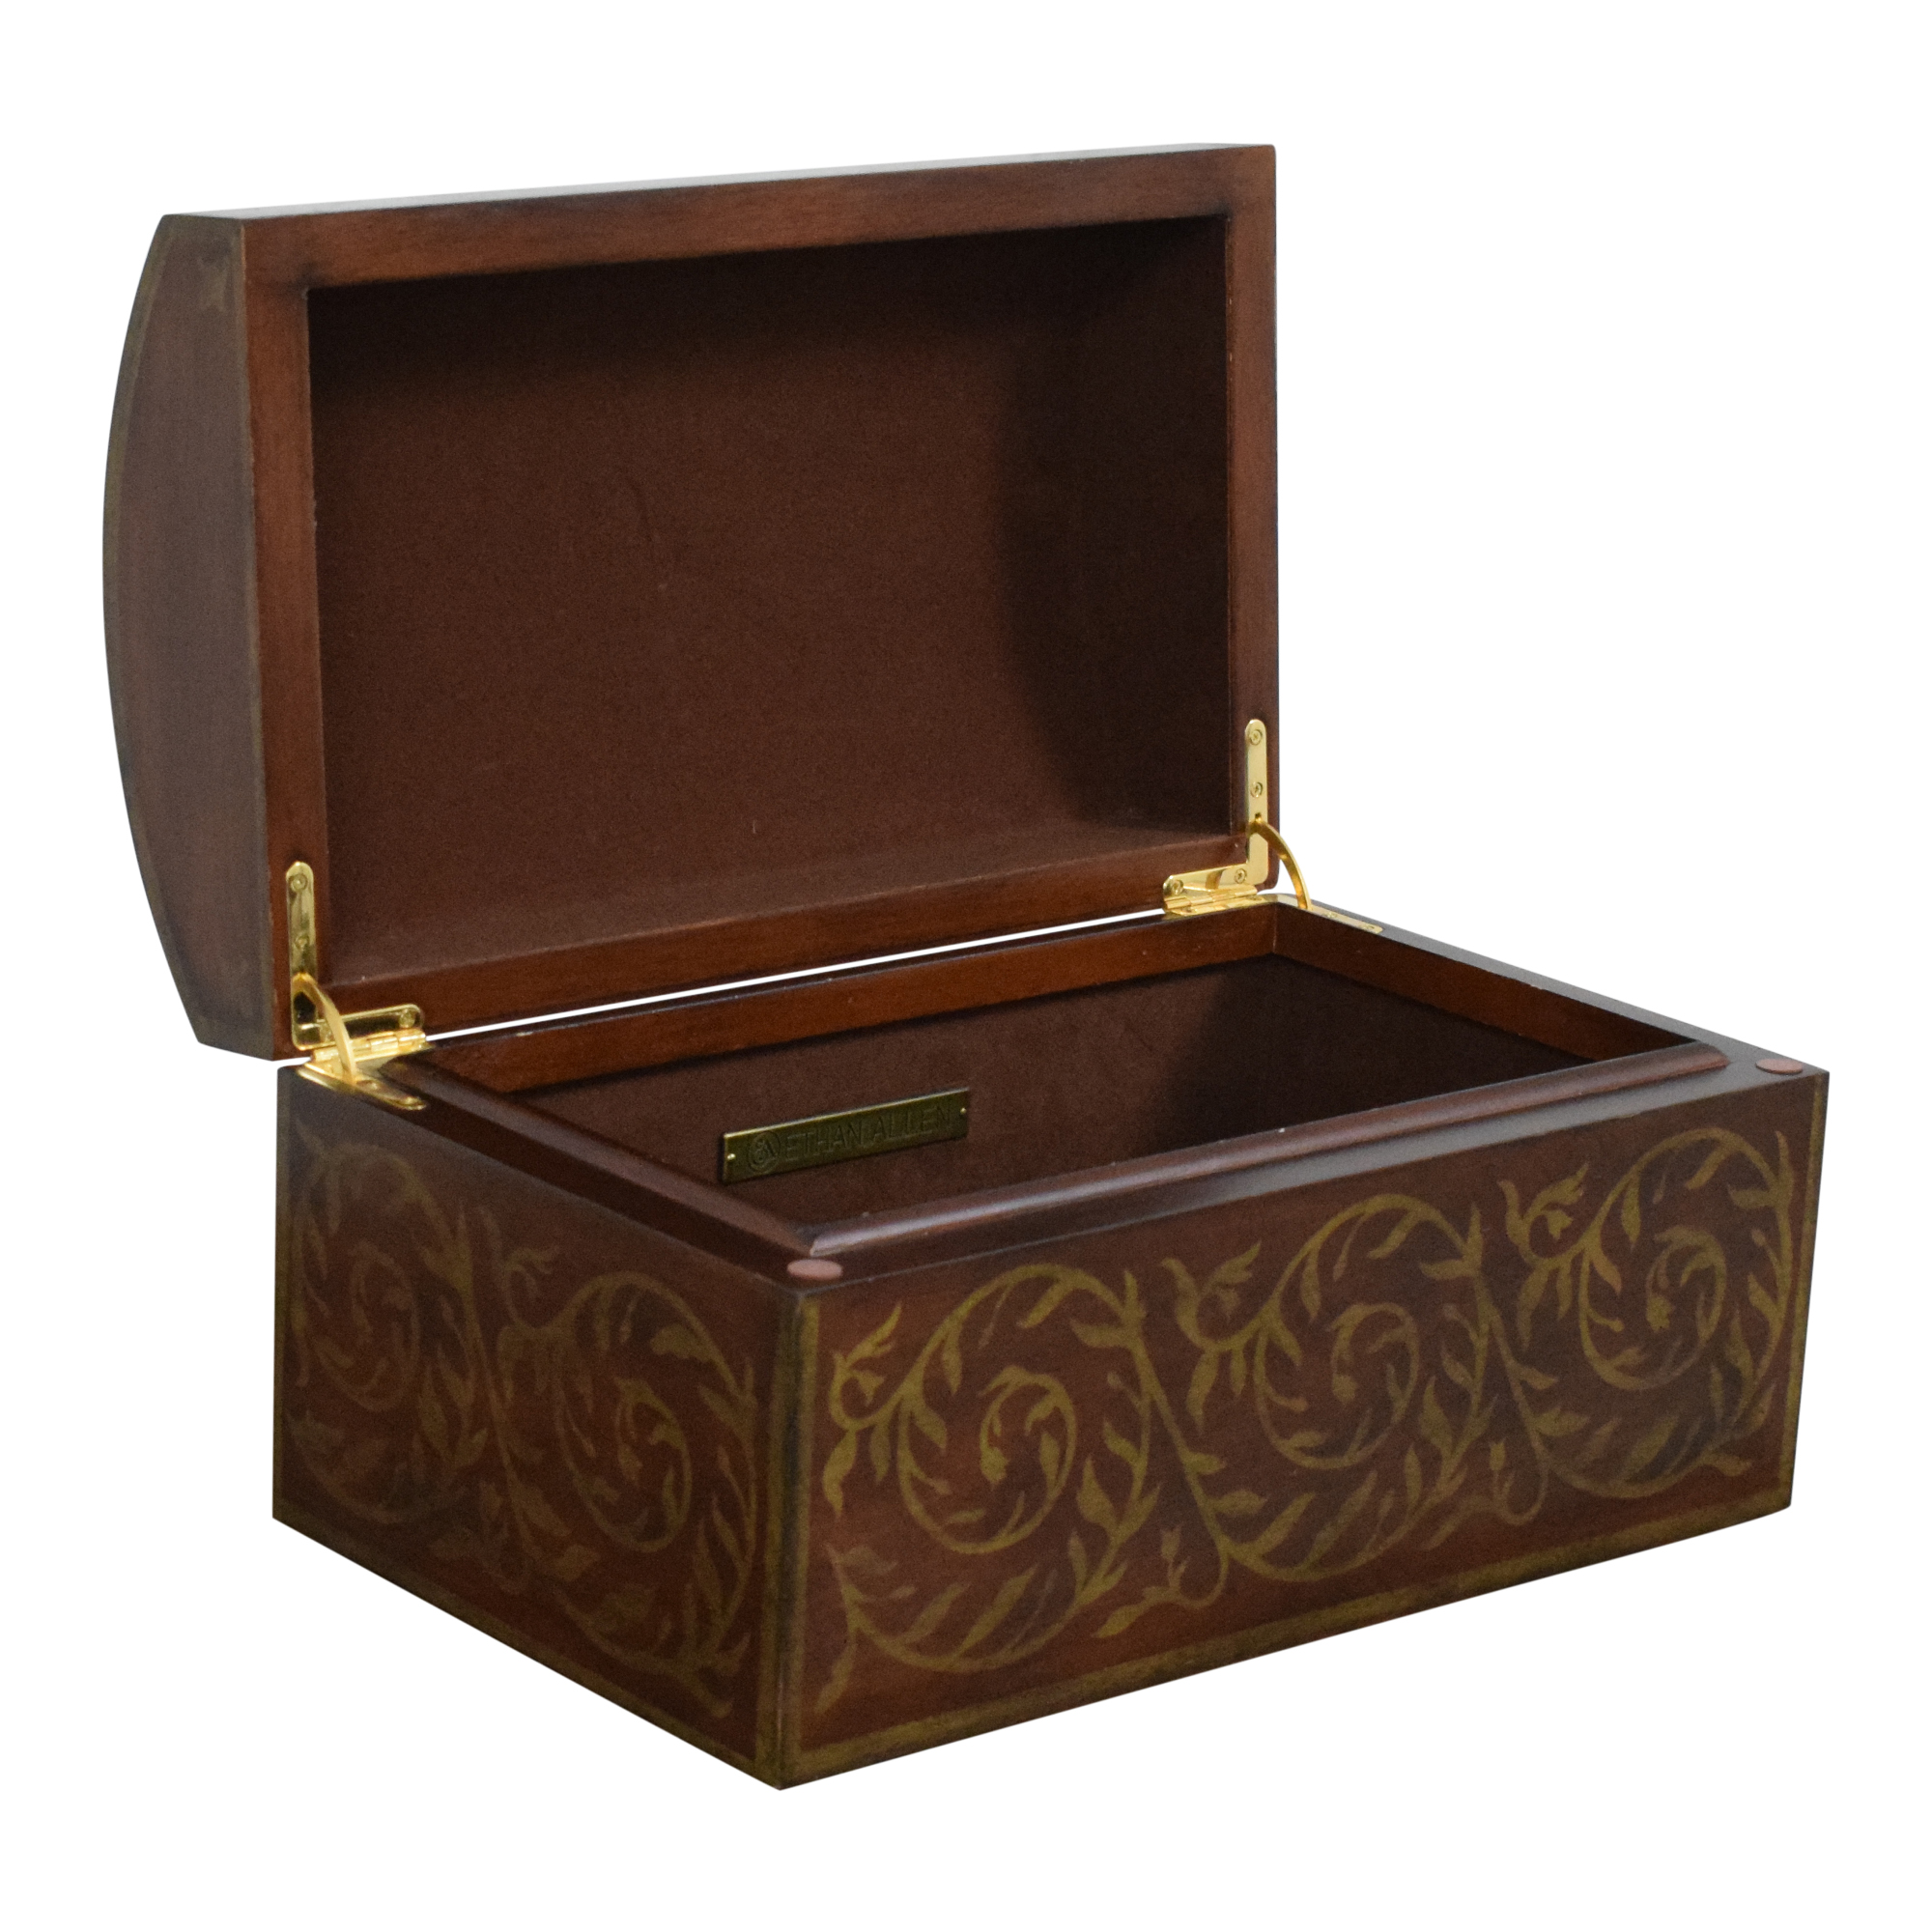 Ethan Allen Dome Top Jewelry Box Ethan Allen